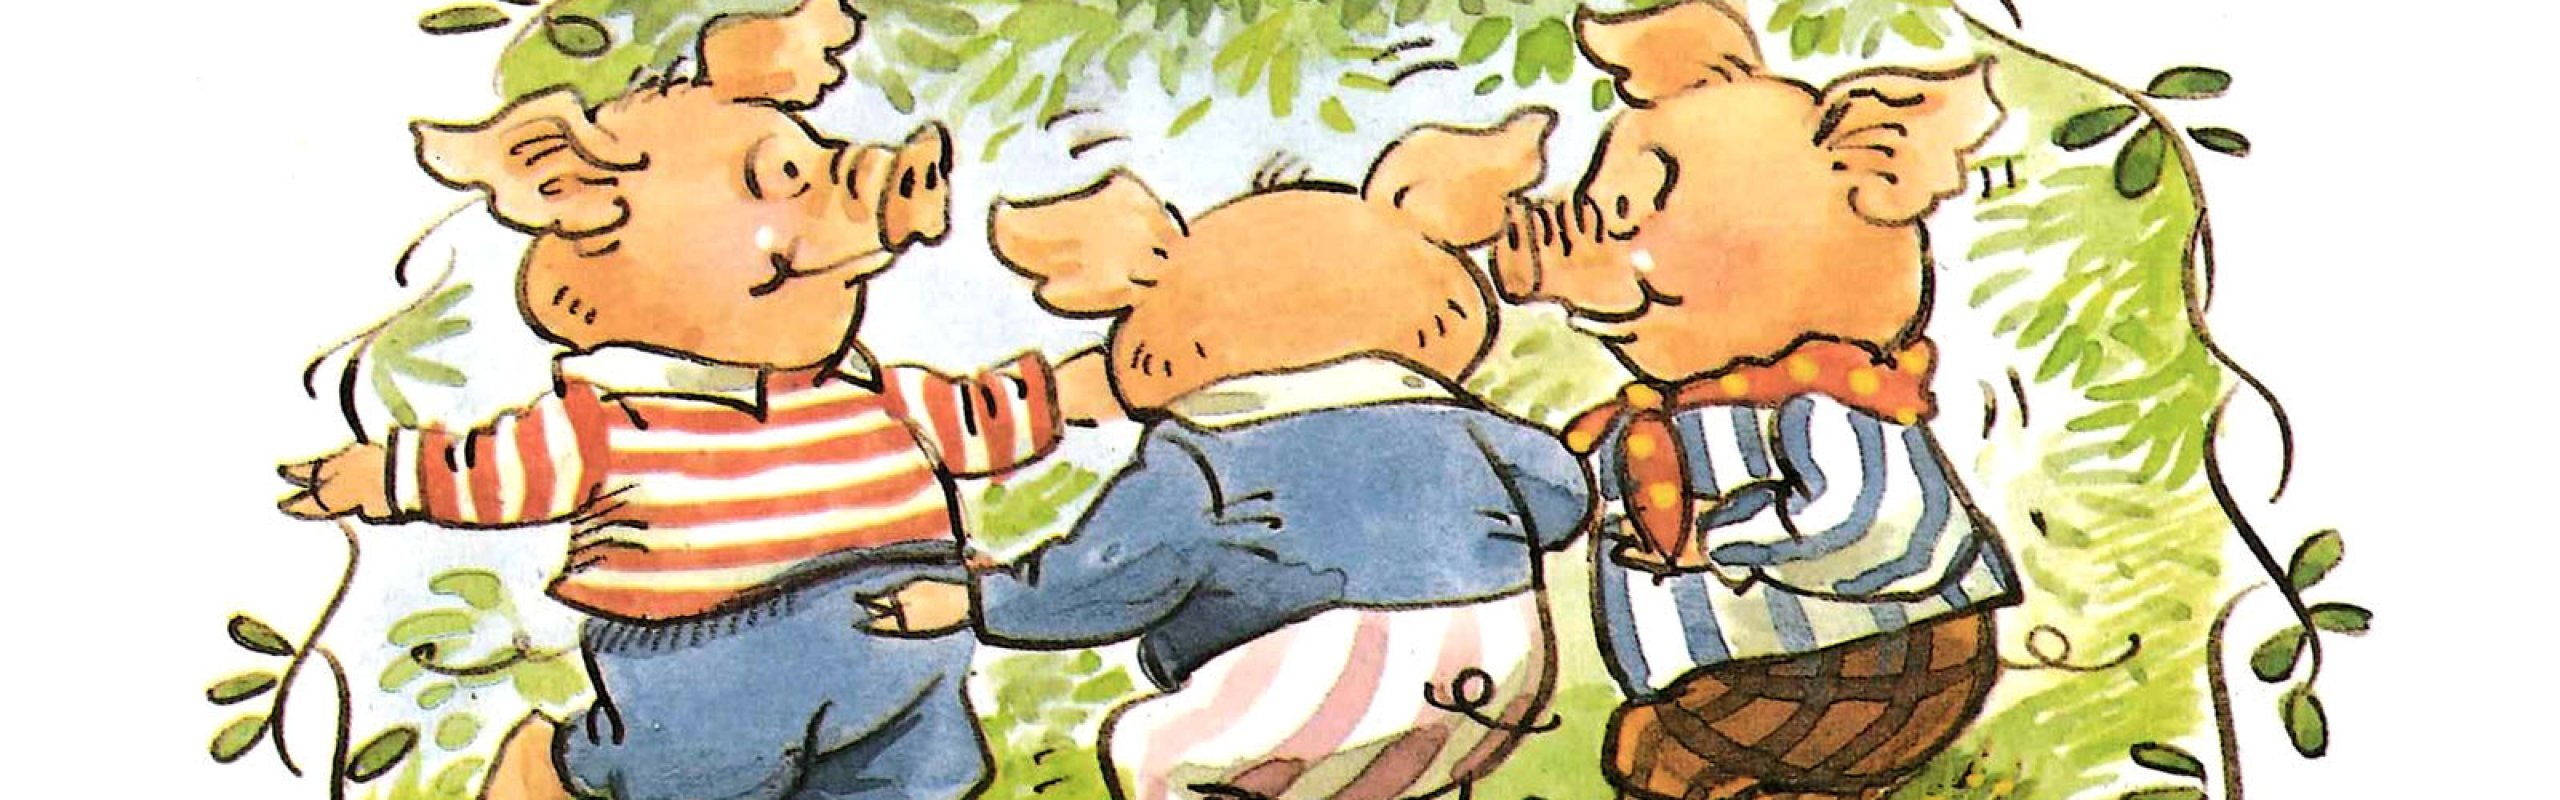 It's Storytime! The Three Little Pigs